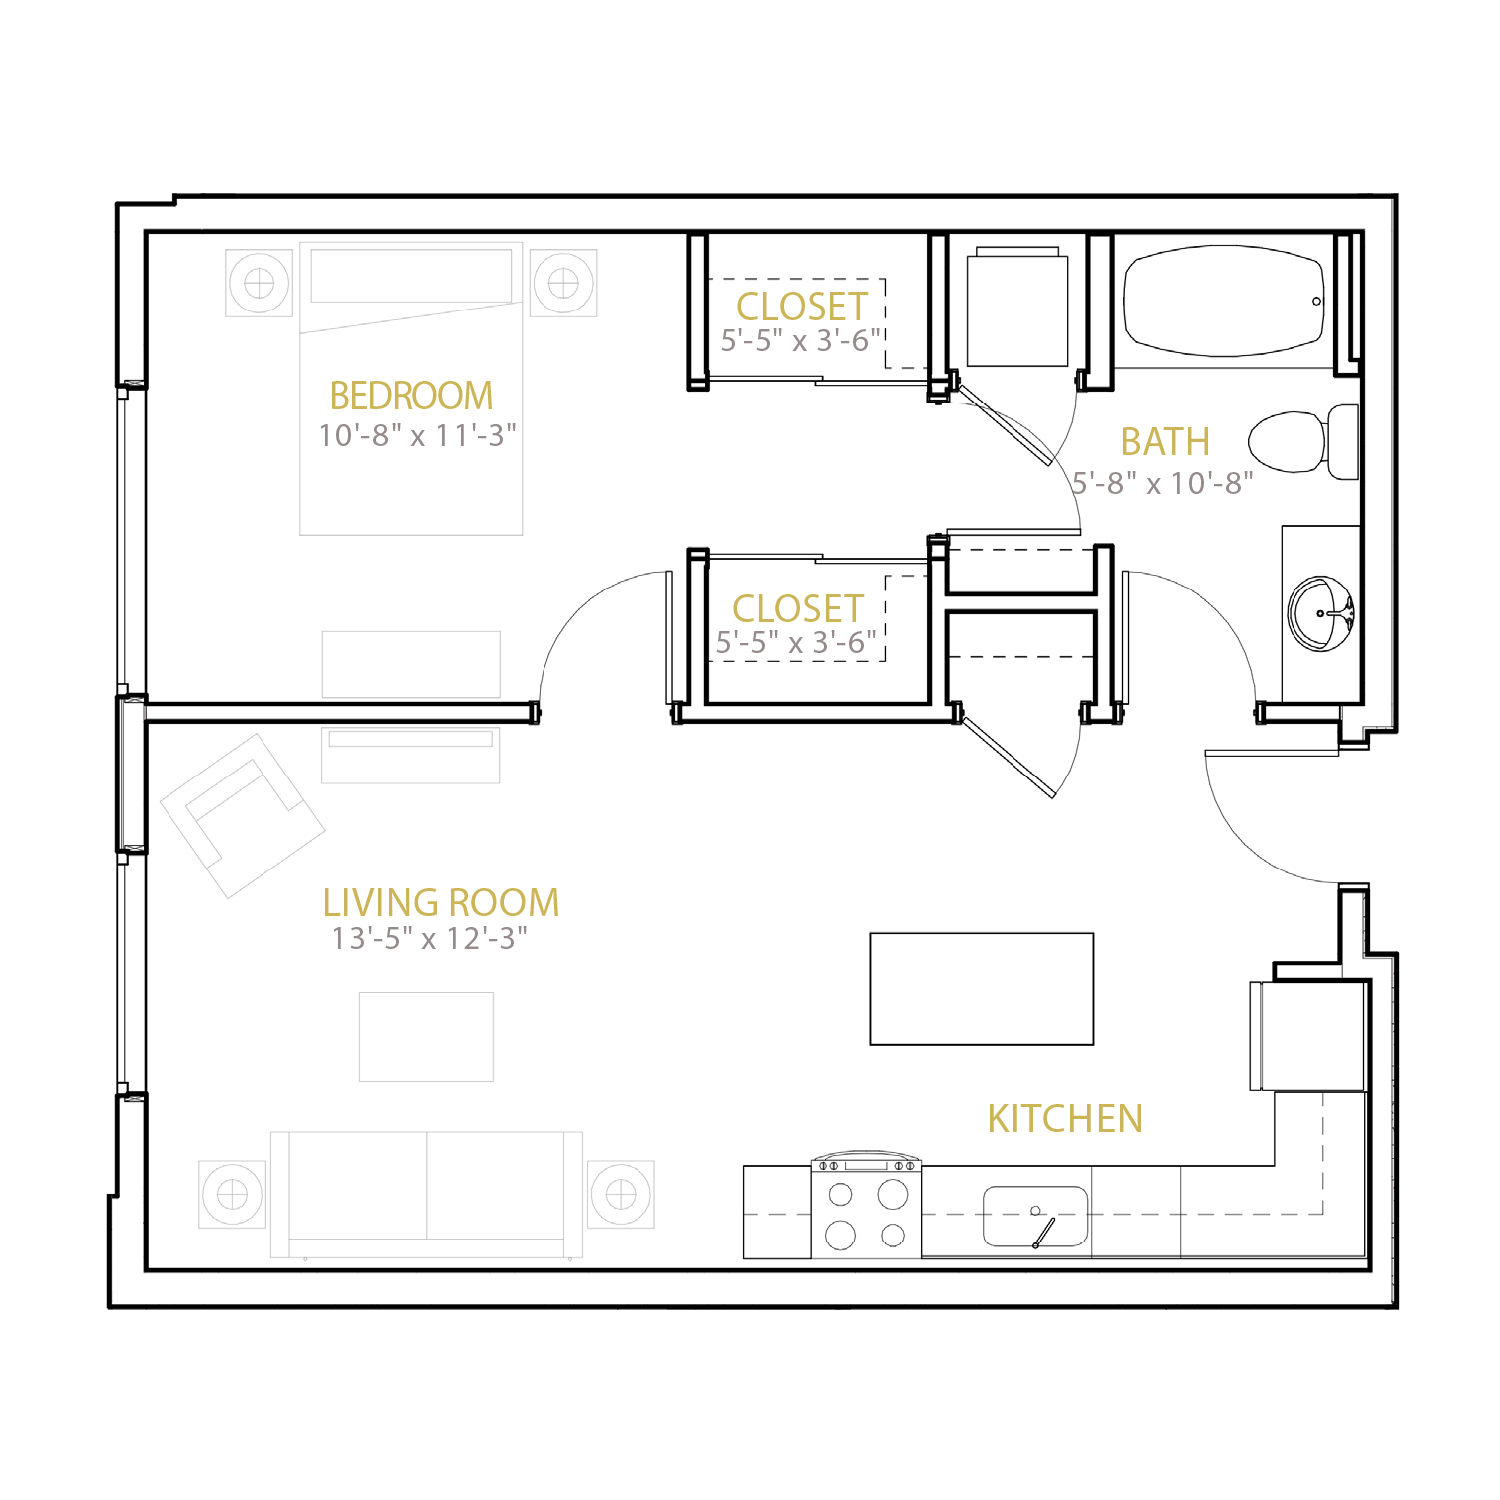 B Two floor plan diagram. One bedroom, one bathroom, and an open kitchen and living area.